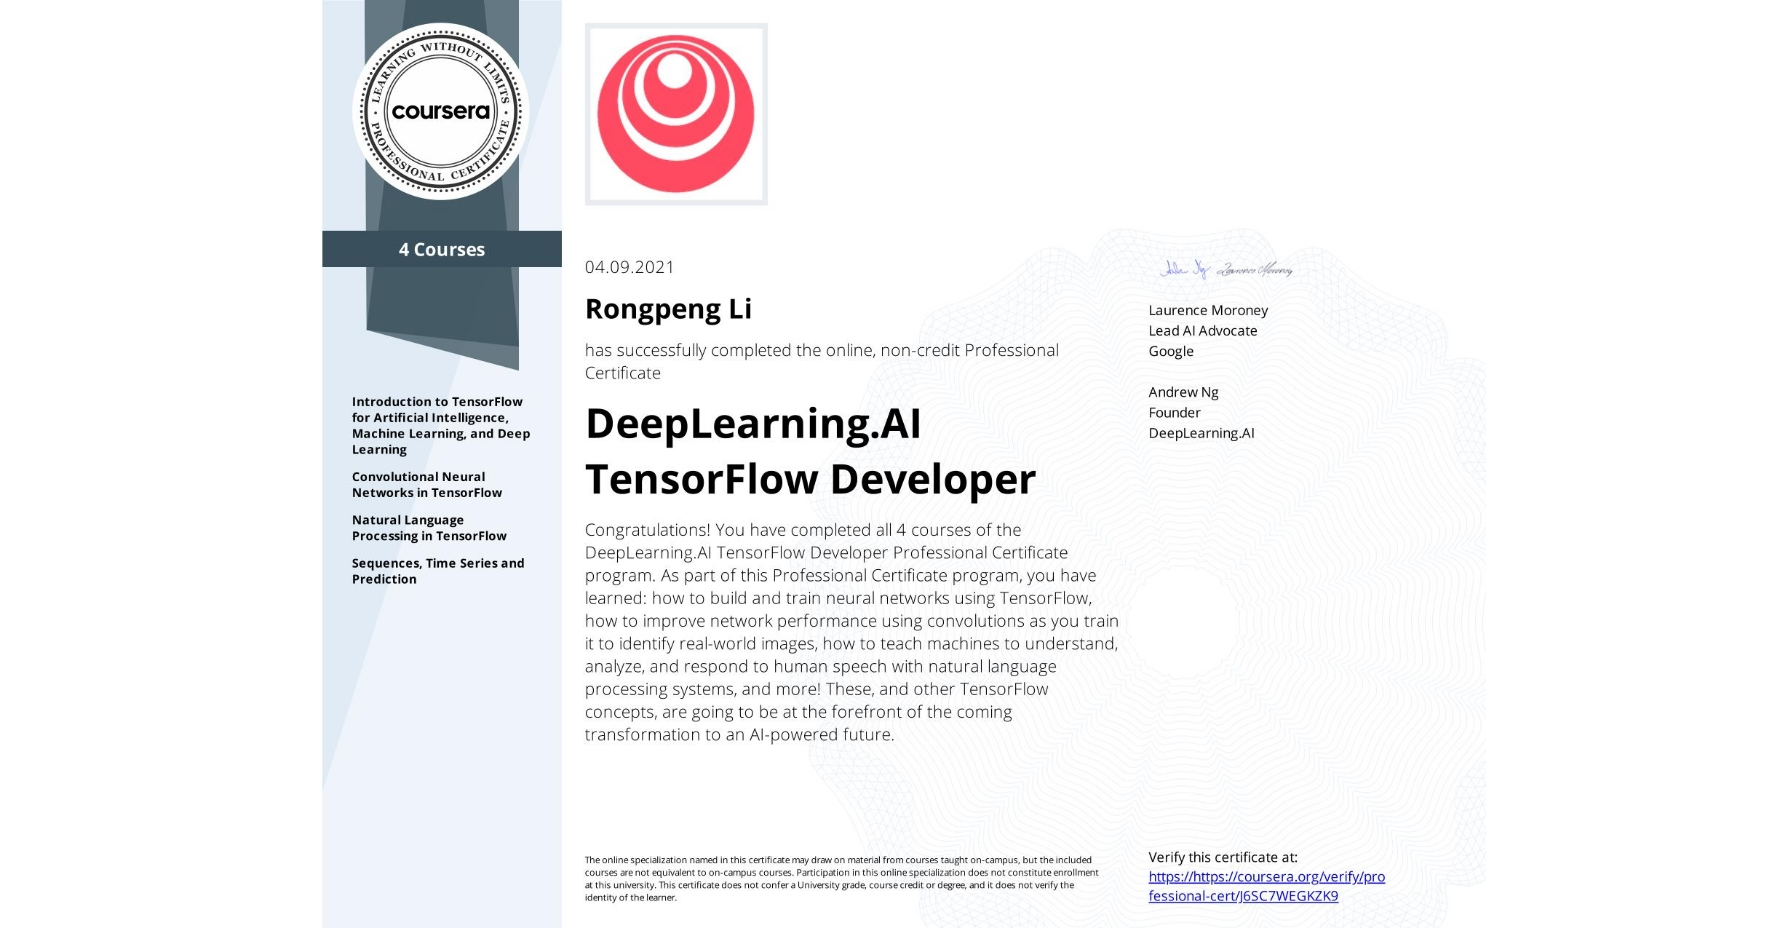 View certificate for Rongpeng Li, DeepLearning.AI TensorFlow Developer, offered through Coursera. Congratulations! You have completed all 4 courses of the DeepLearning.AI TensorFlow Developer Professional Certificate program.   As part of this Professional Certificate program, you have learned: how to build and train neural networks using TensorFlow, how to improve network performance using convolutions as you train it to identify real-world images, how to teach machines to understand, analyze, and respond to human speech with natural language processing systems, and more!  These, and other TensorFlow concepts, are going to be at the forefront of the coming transformation to an AI-powered future.